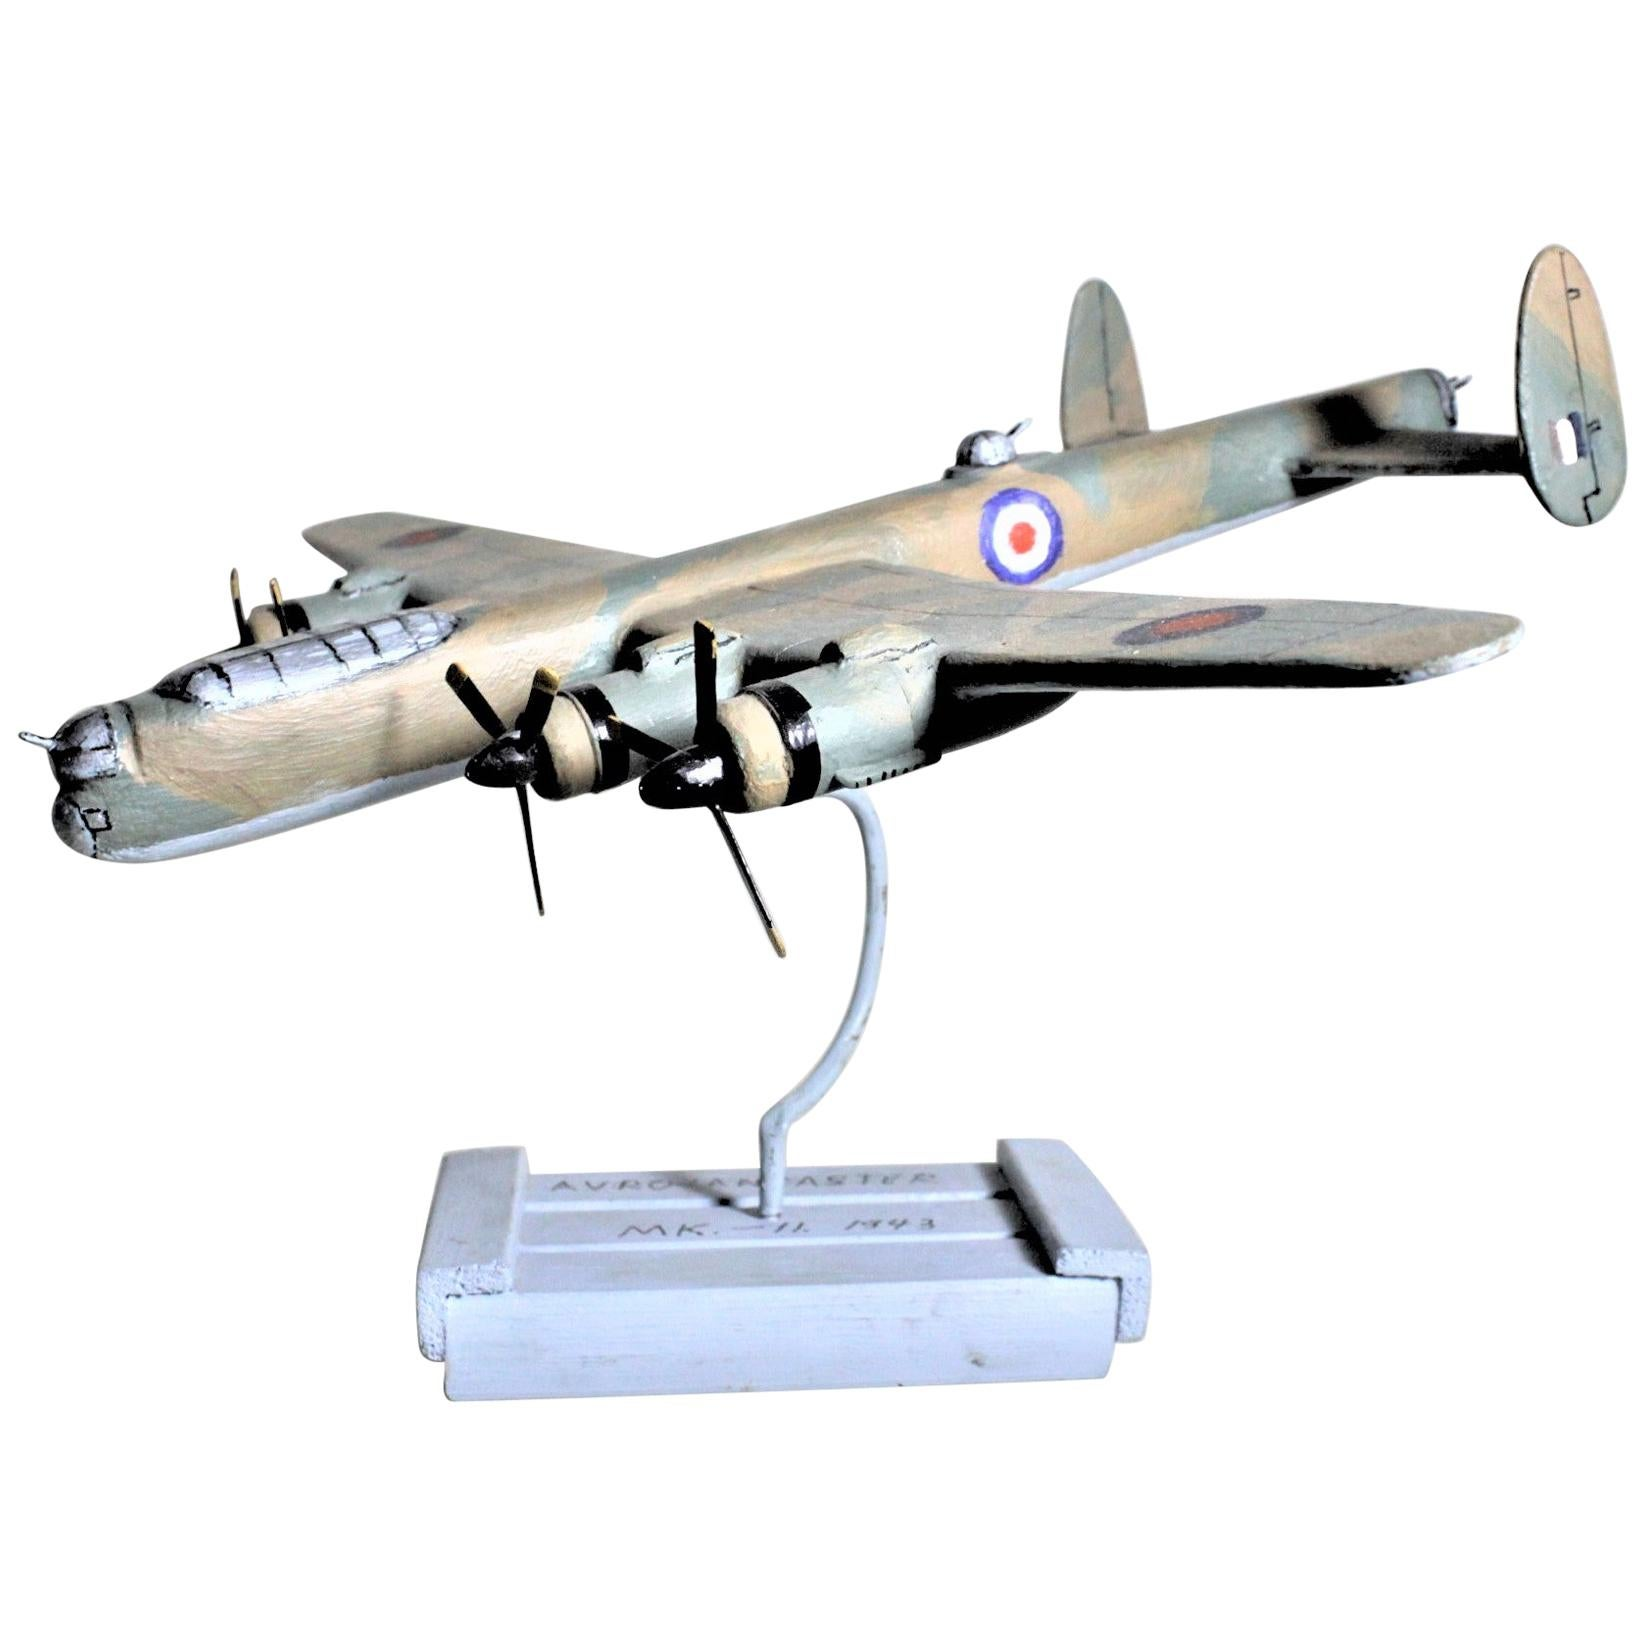 Folk Art Wooden Hand Carved and Painted WW2 Lancaster Bomber Model Airplane